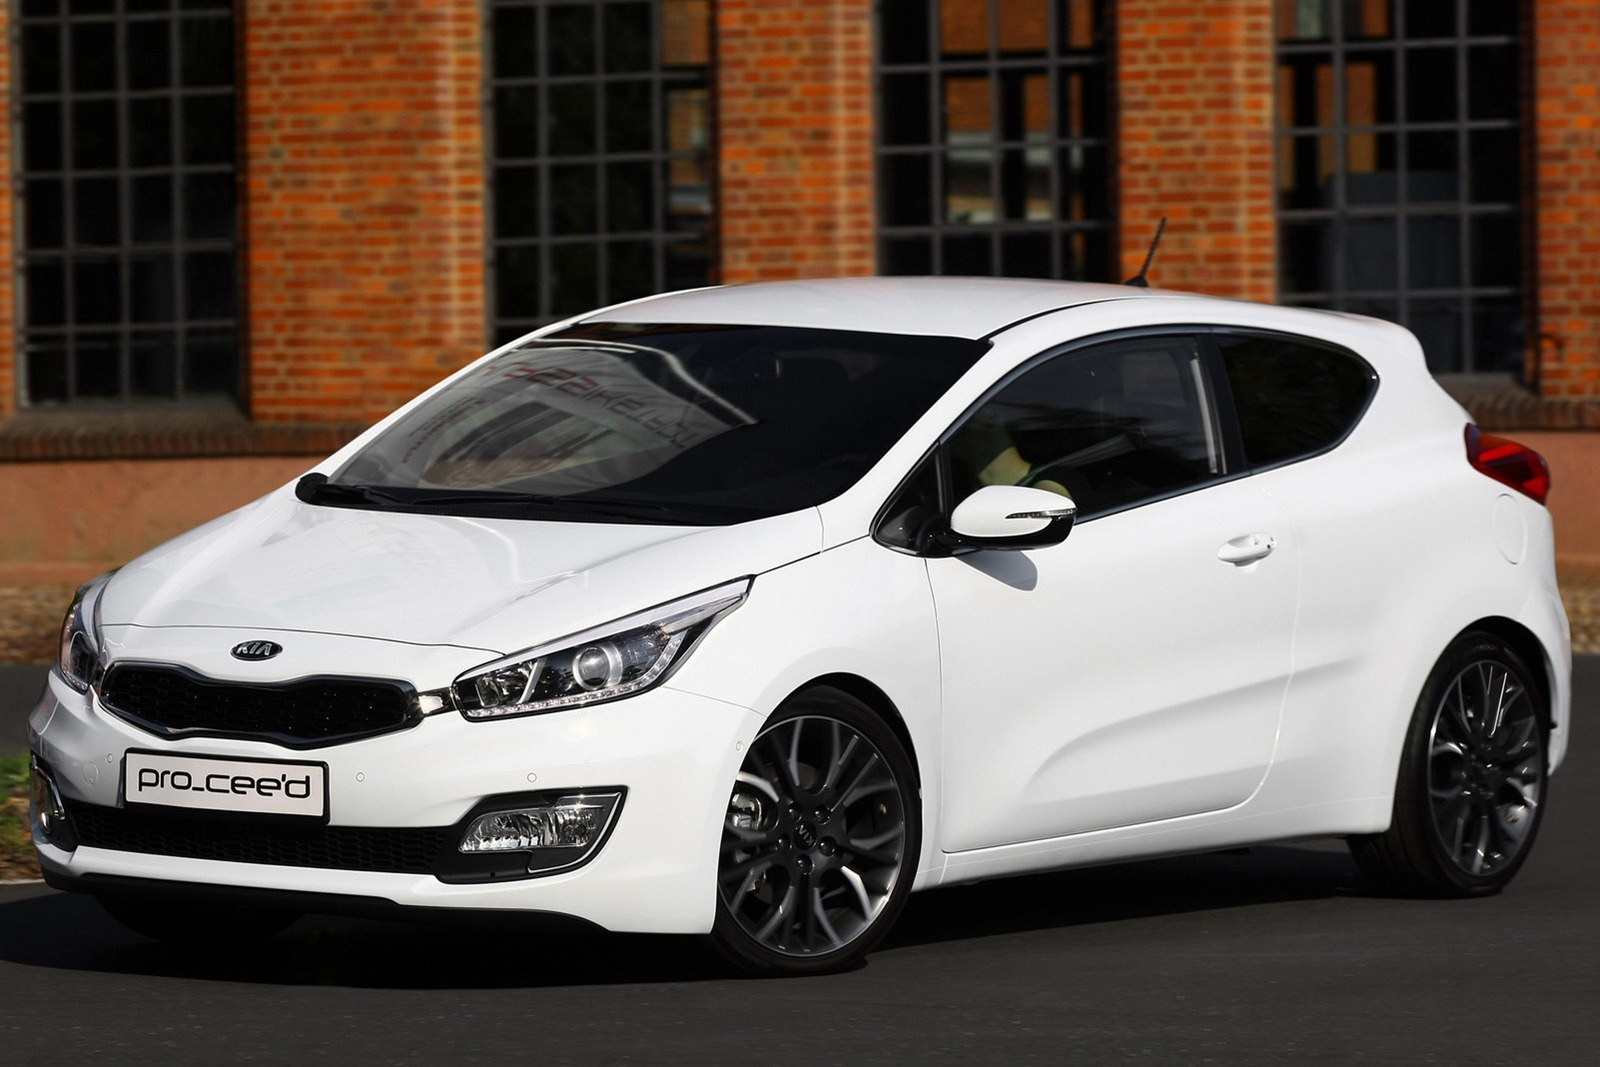 new 2013 kia pro cee d coupe revealed ahead of paris autoevolution. Black Bedroom Furniture Sets. Home Design Ideas